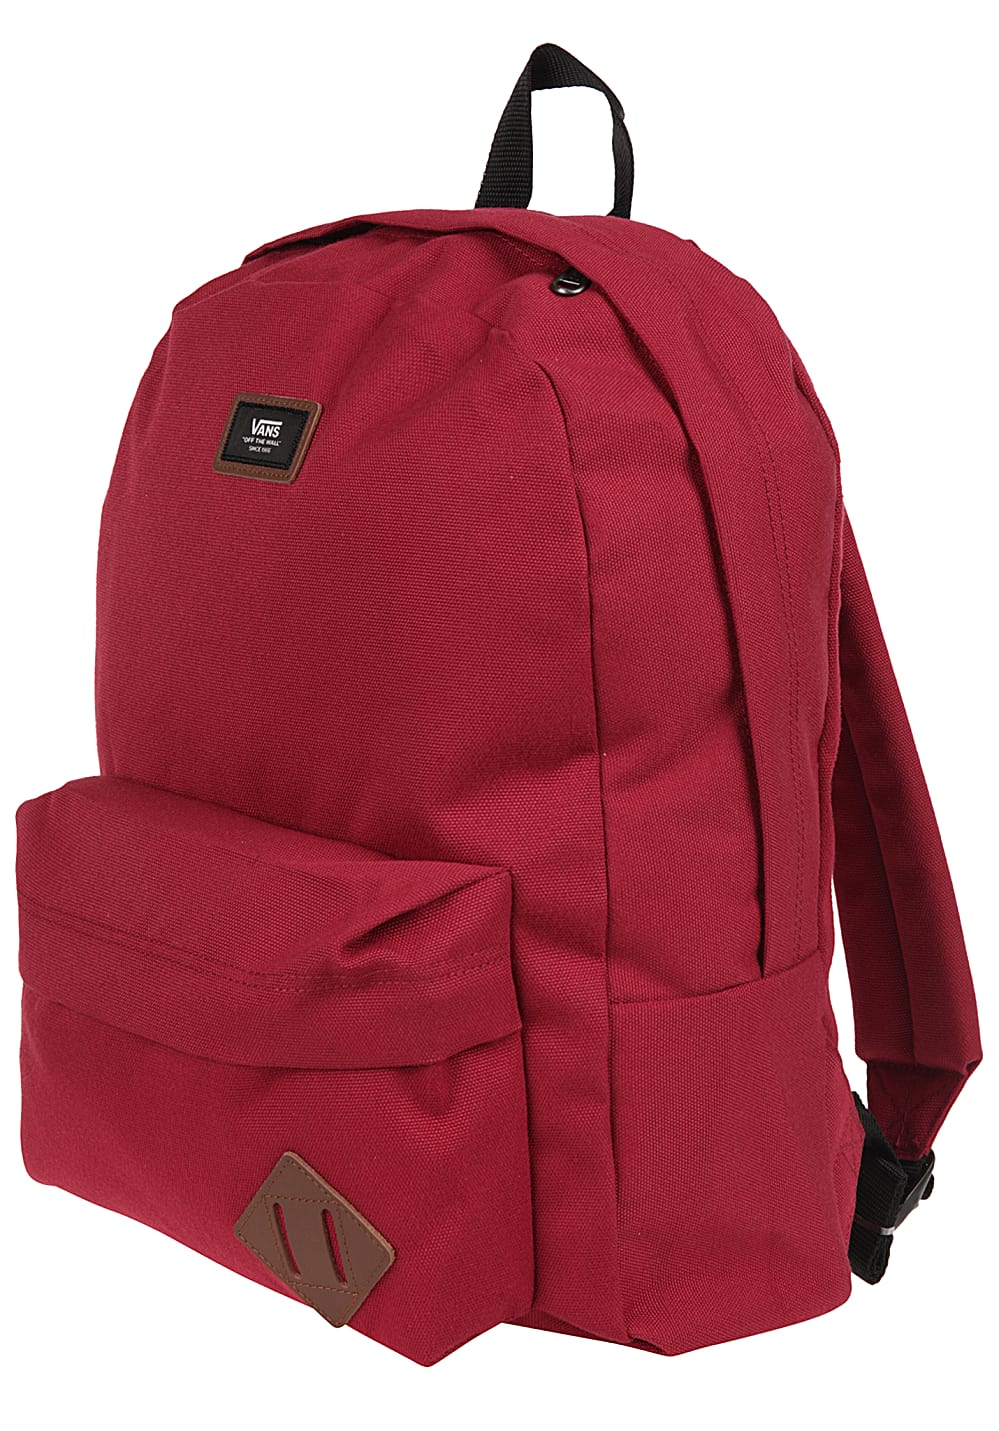 Vans Old Skool II - Backpack - Red - Planet Sports